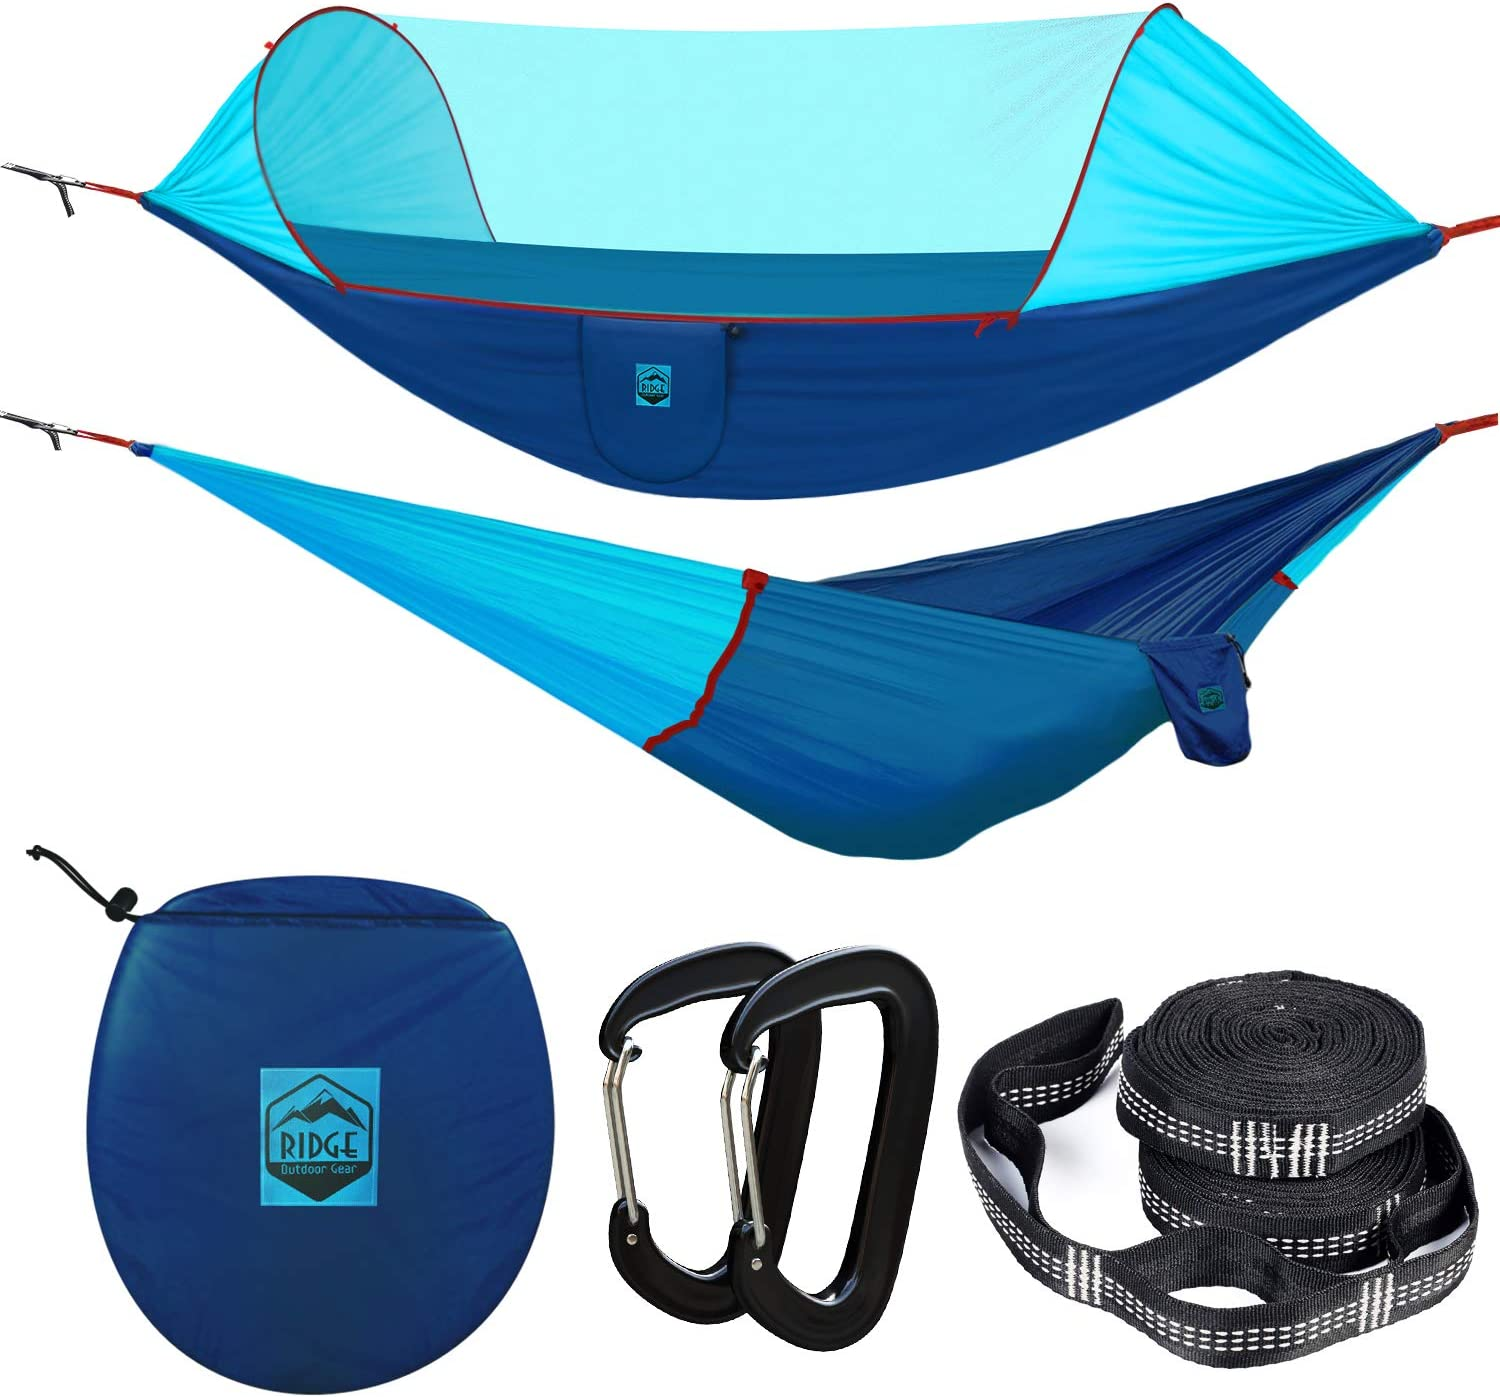 Ridge Outdoor Gear Camping Hammock with Mosquito Net – Ripstop Nylon – Ultralight Hammock Tent Bundle with Bug Netting, Straps, Carabiners